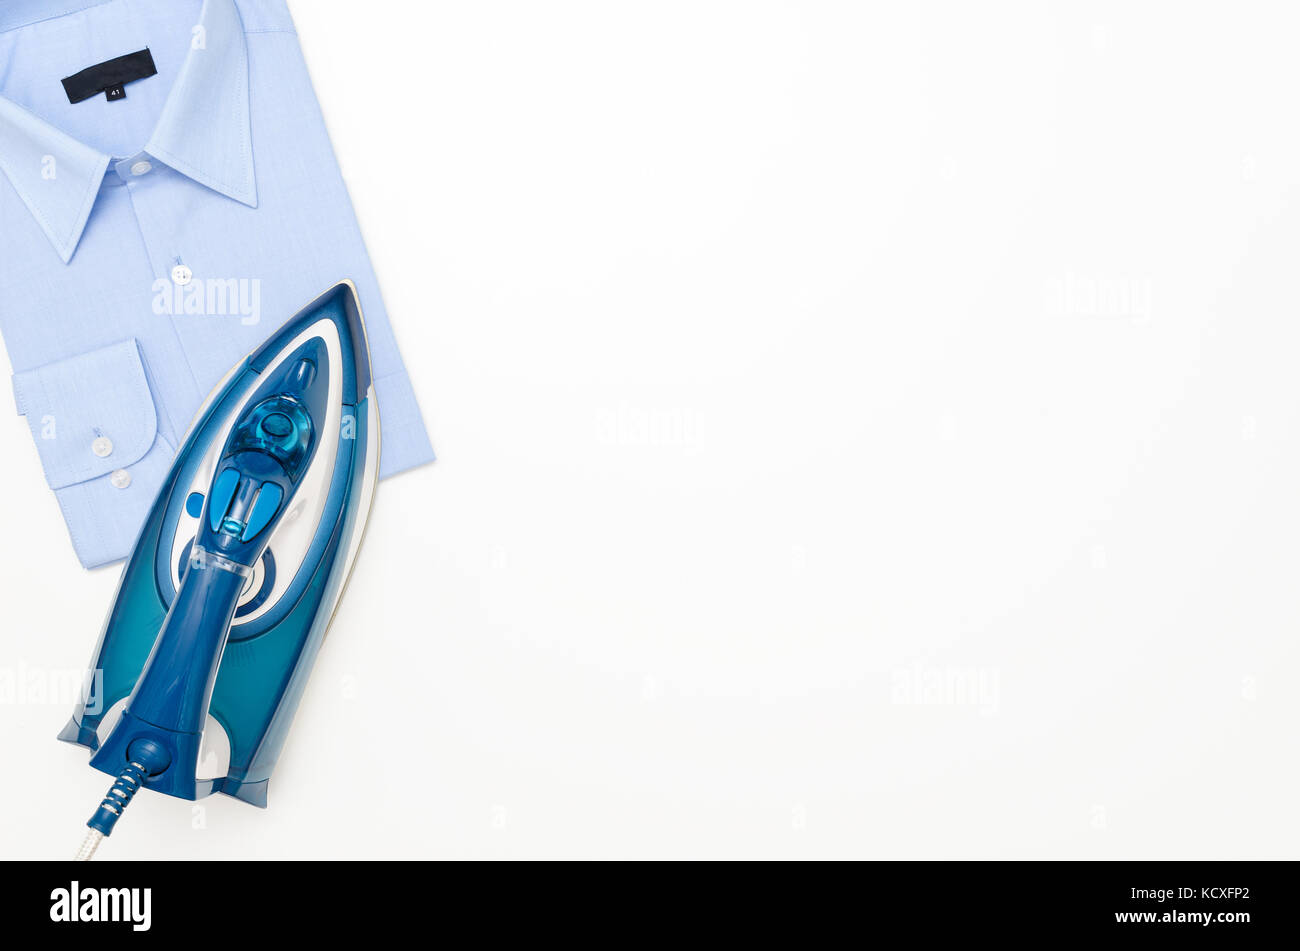 Blue iron and shirt on ironing board top view. iron board clothes ironing shirt household appliance electric concept - Stock Image